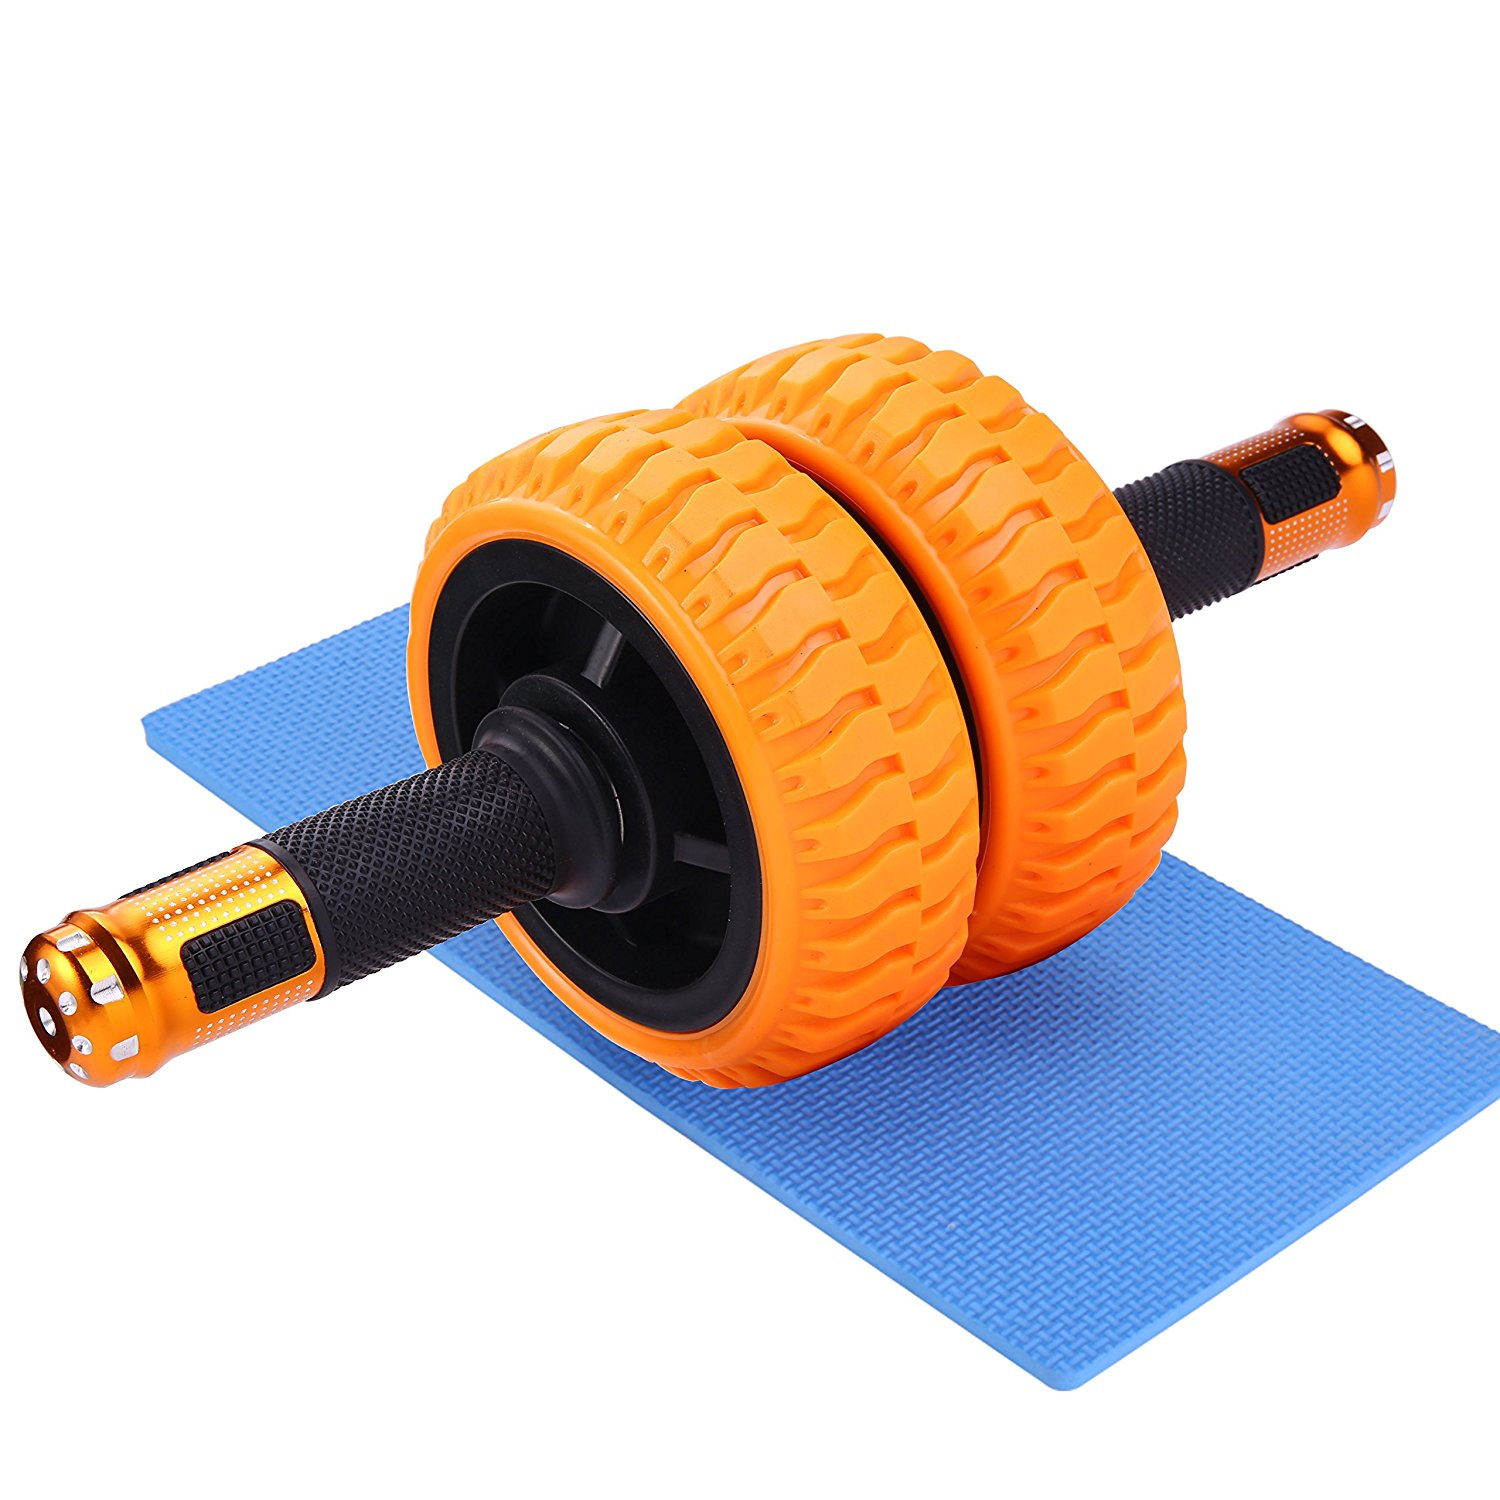 Wnnideo AB Wheel Roller for Exercise Dual Wheels for Extra Stability and Smooth Rolling Widen Roller and Handle Quietly